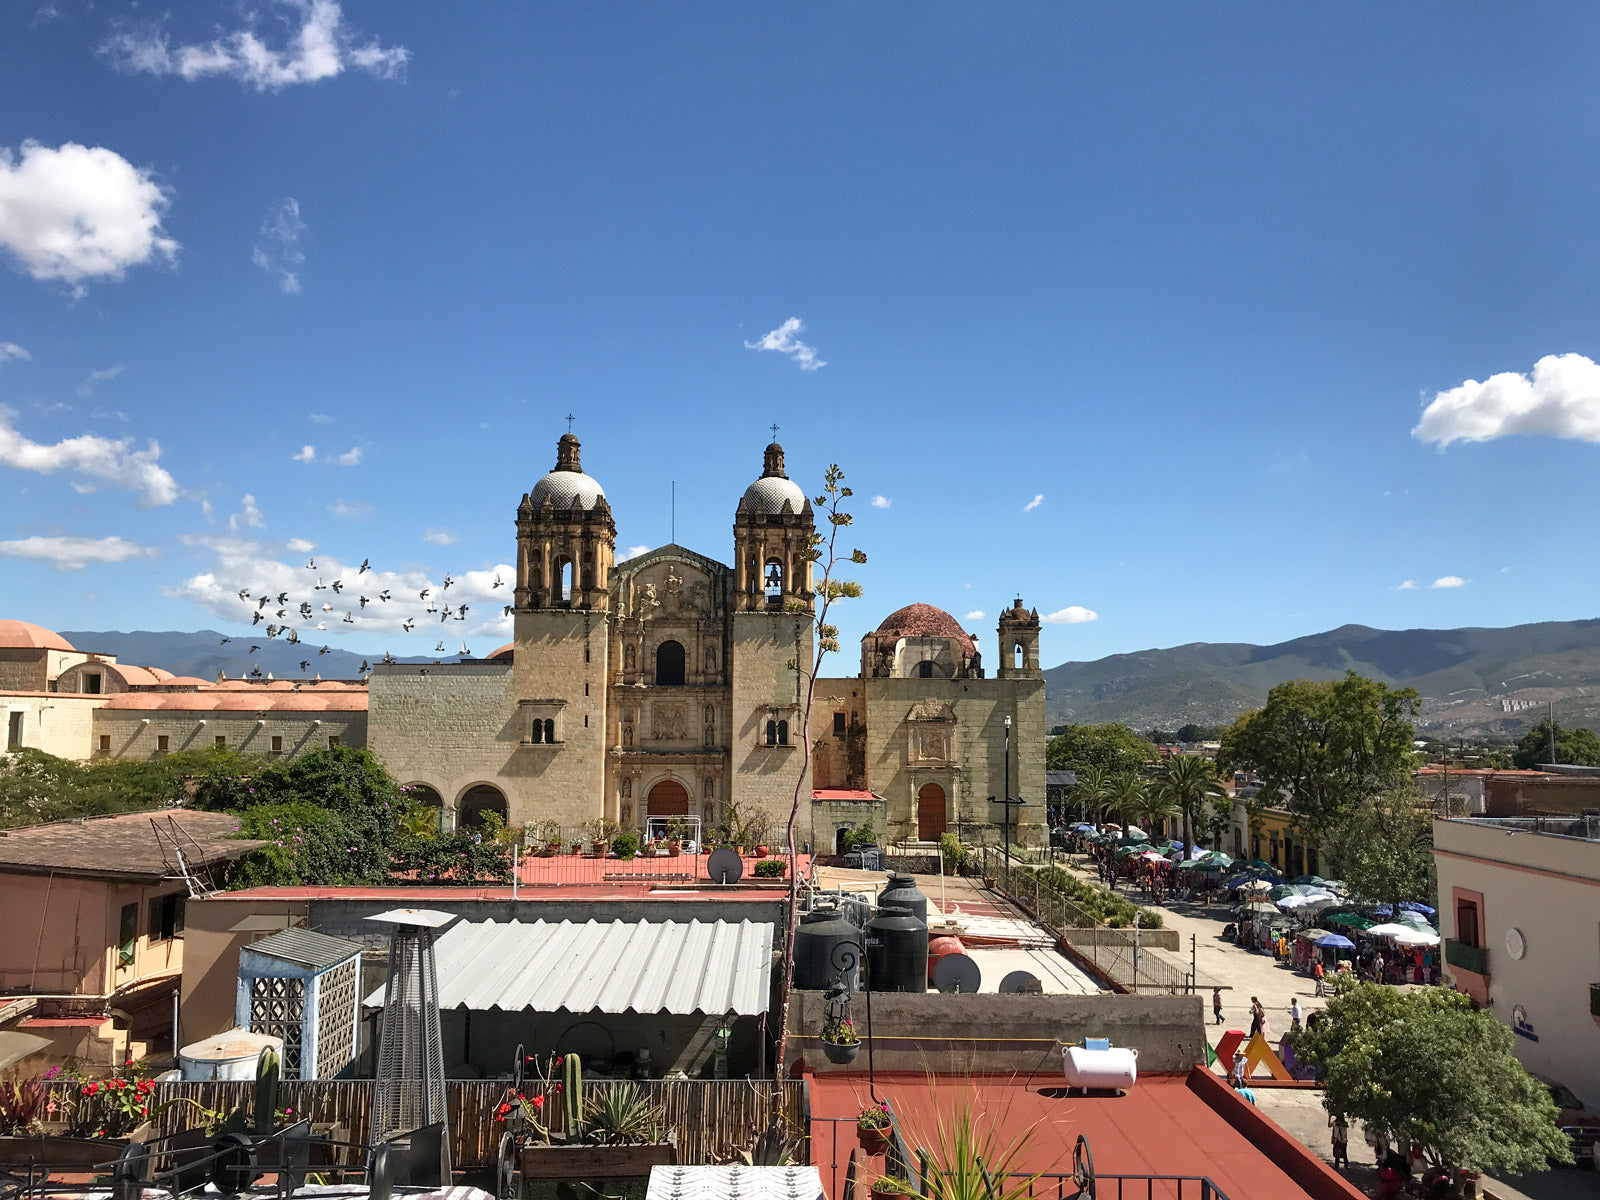 Oaxaca City scape with a large church and blue skies